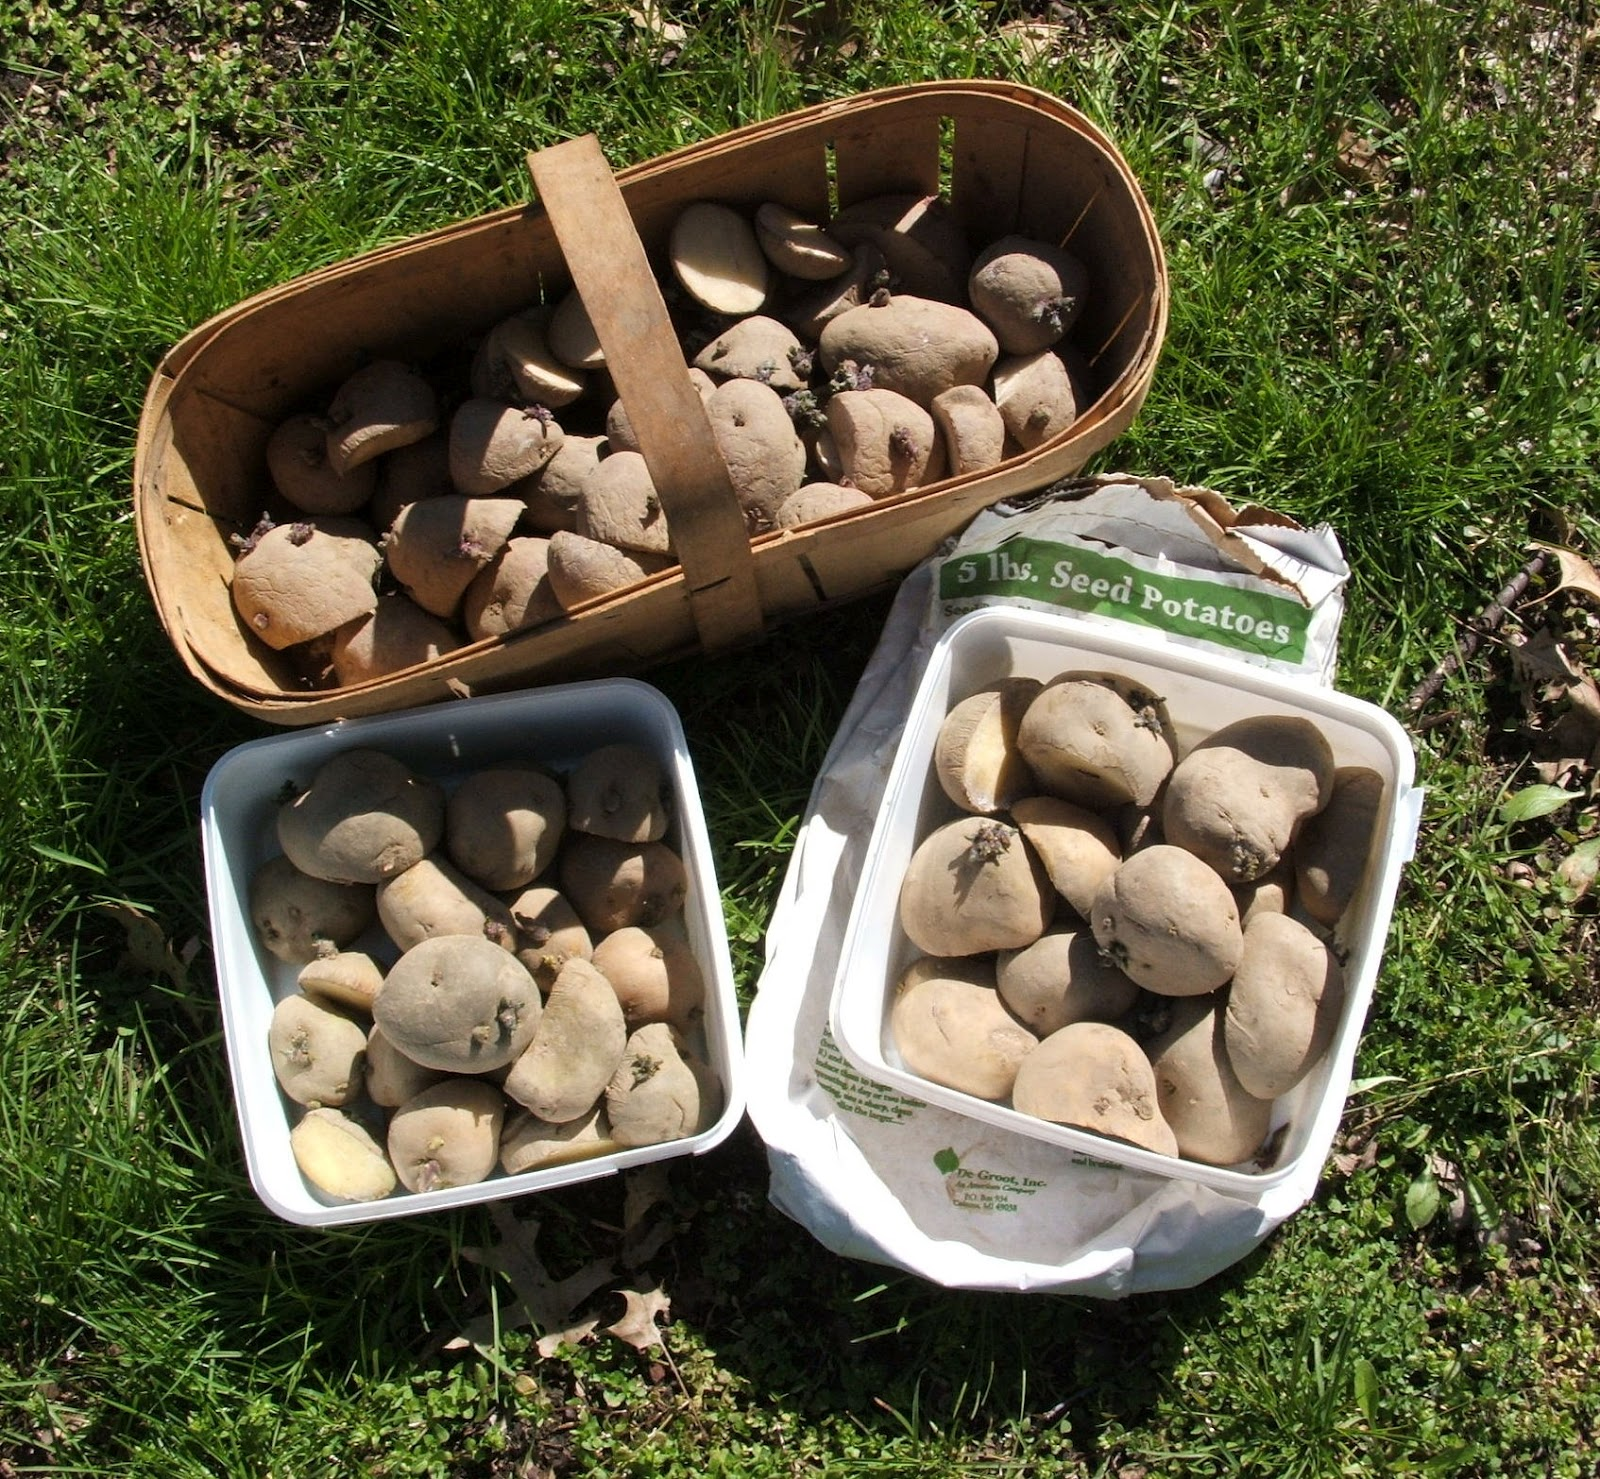 God's Growing Garden: Planting Potatoes in a Compost Pile??